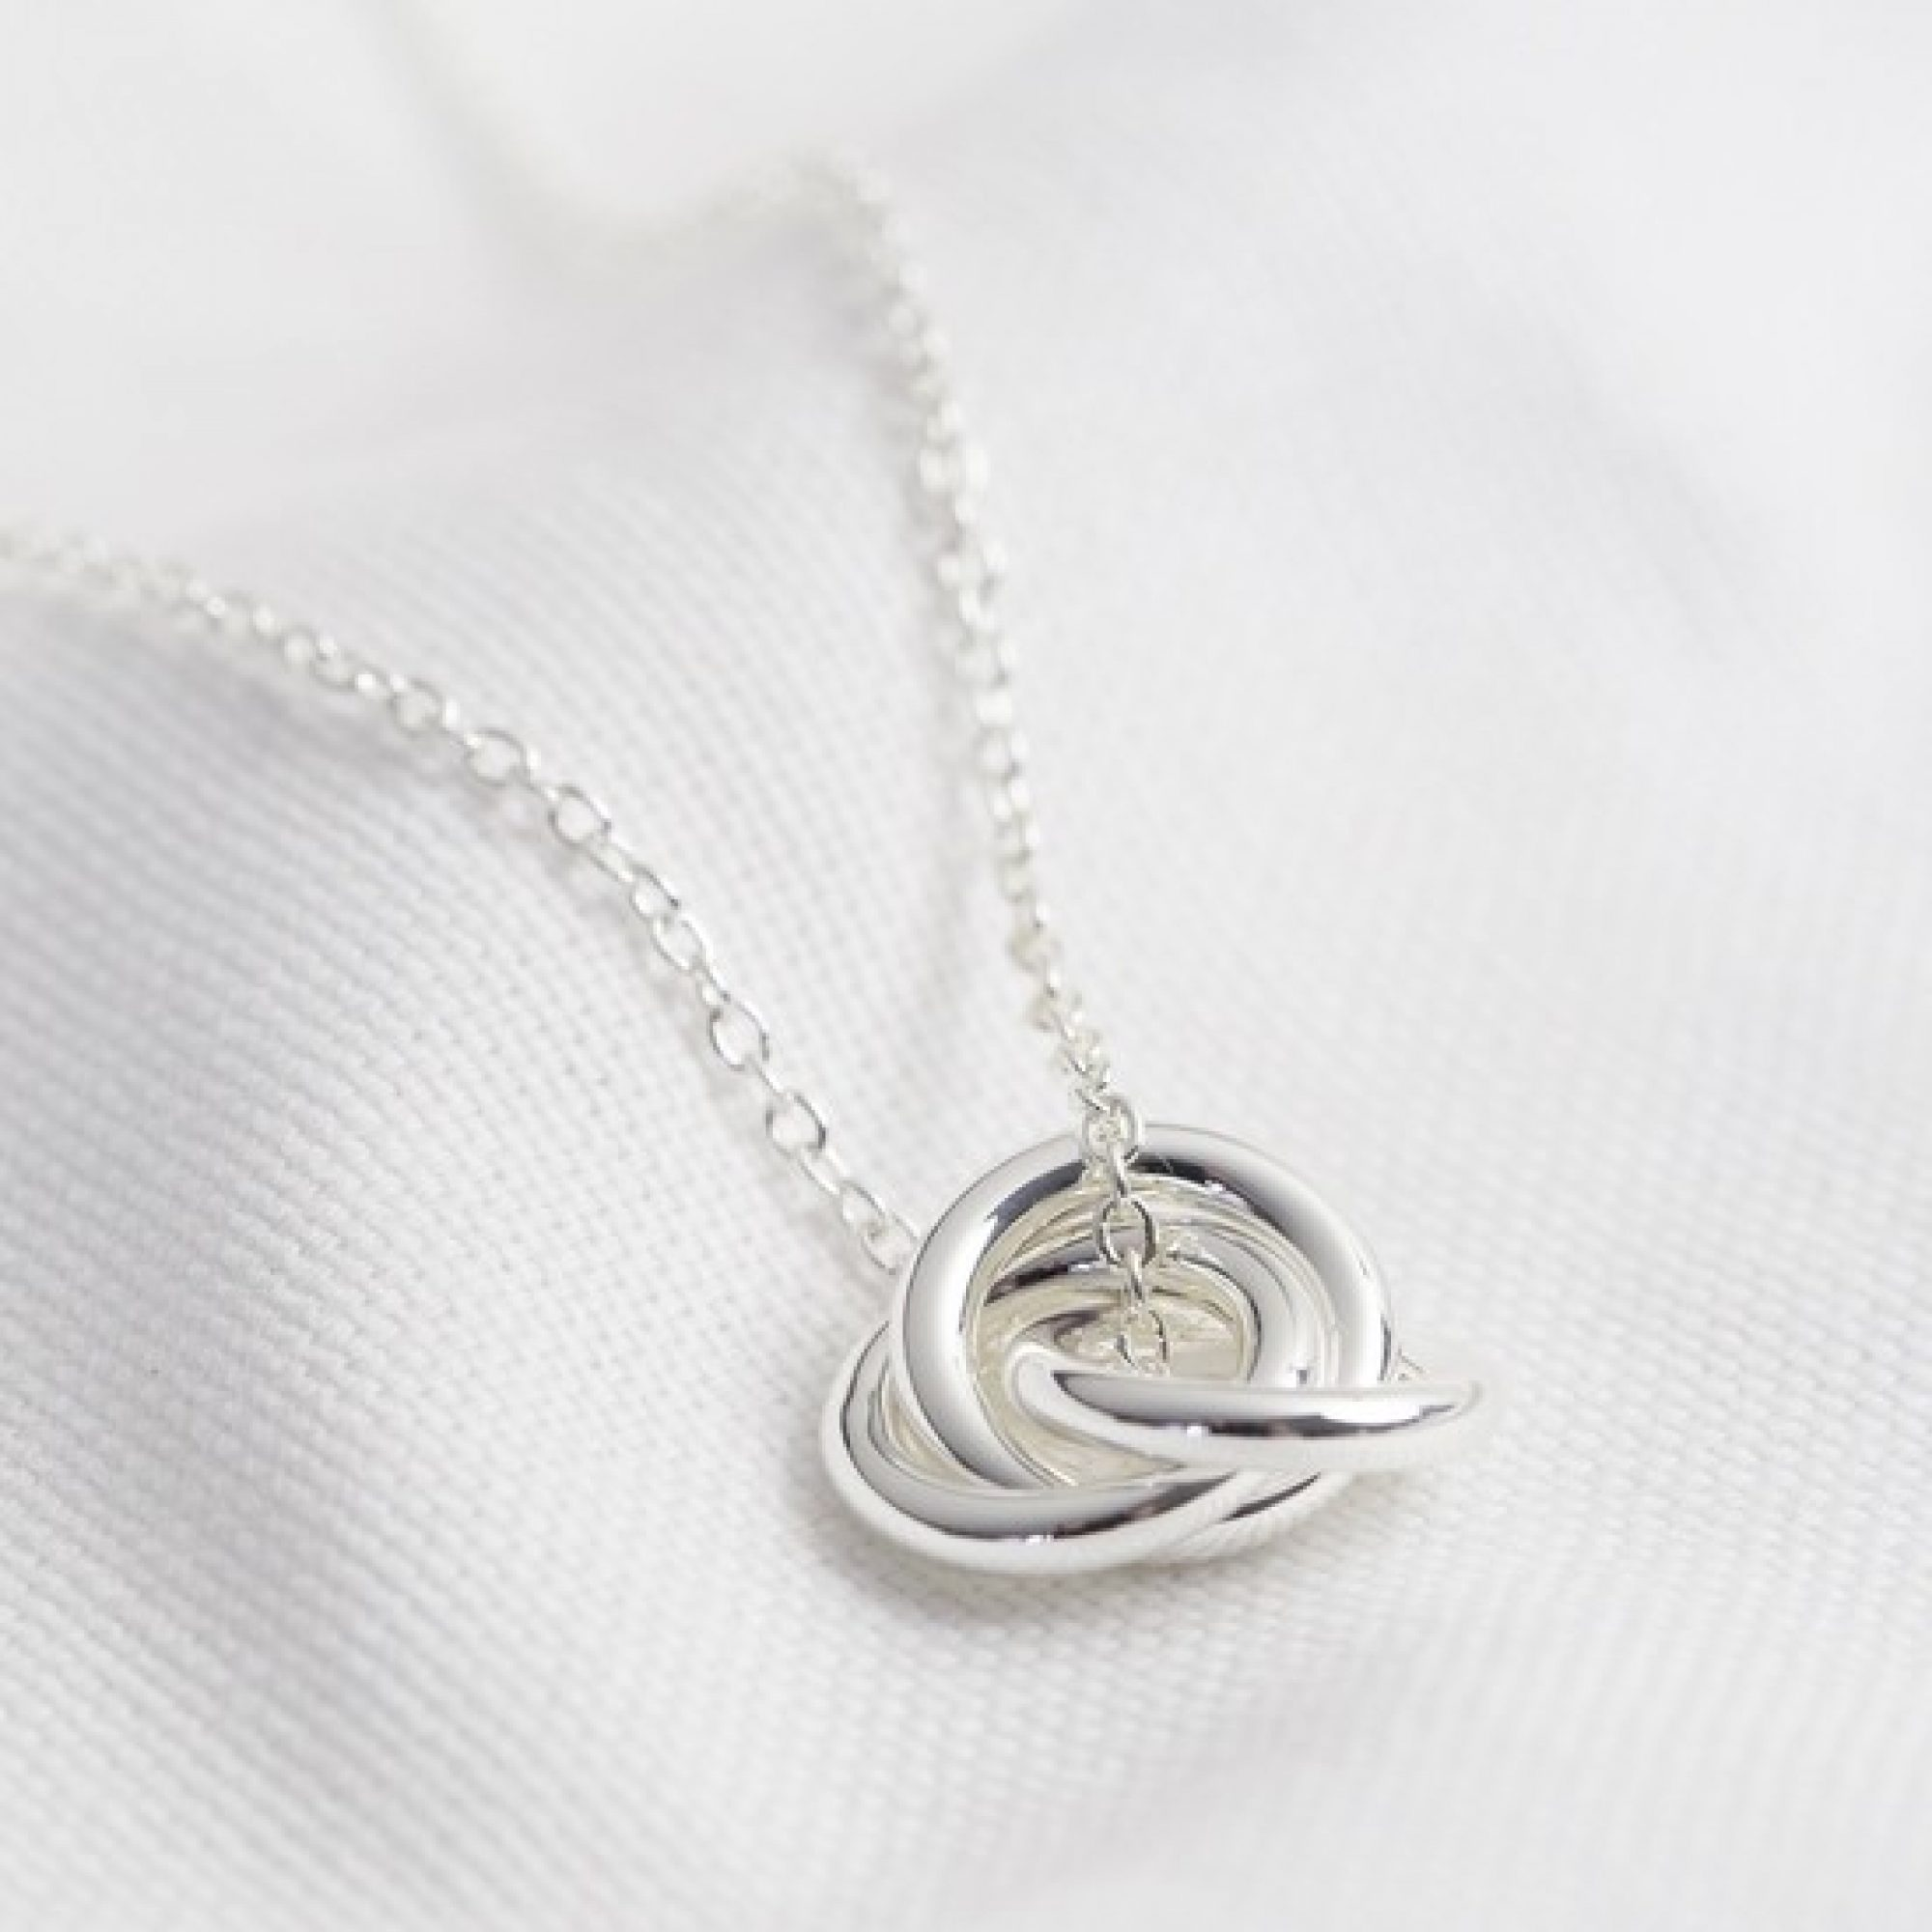 3 Ring Silver Necklace